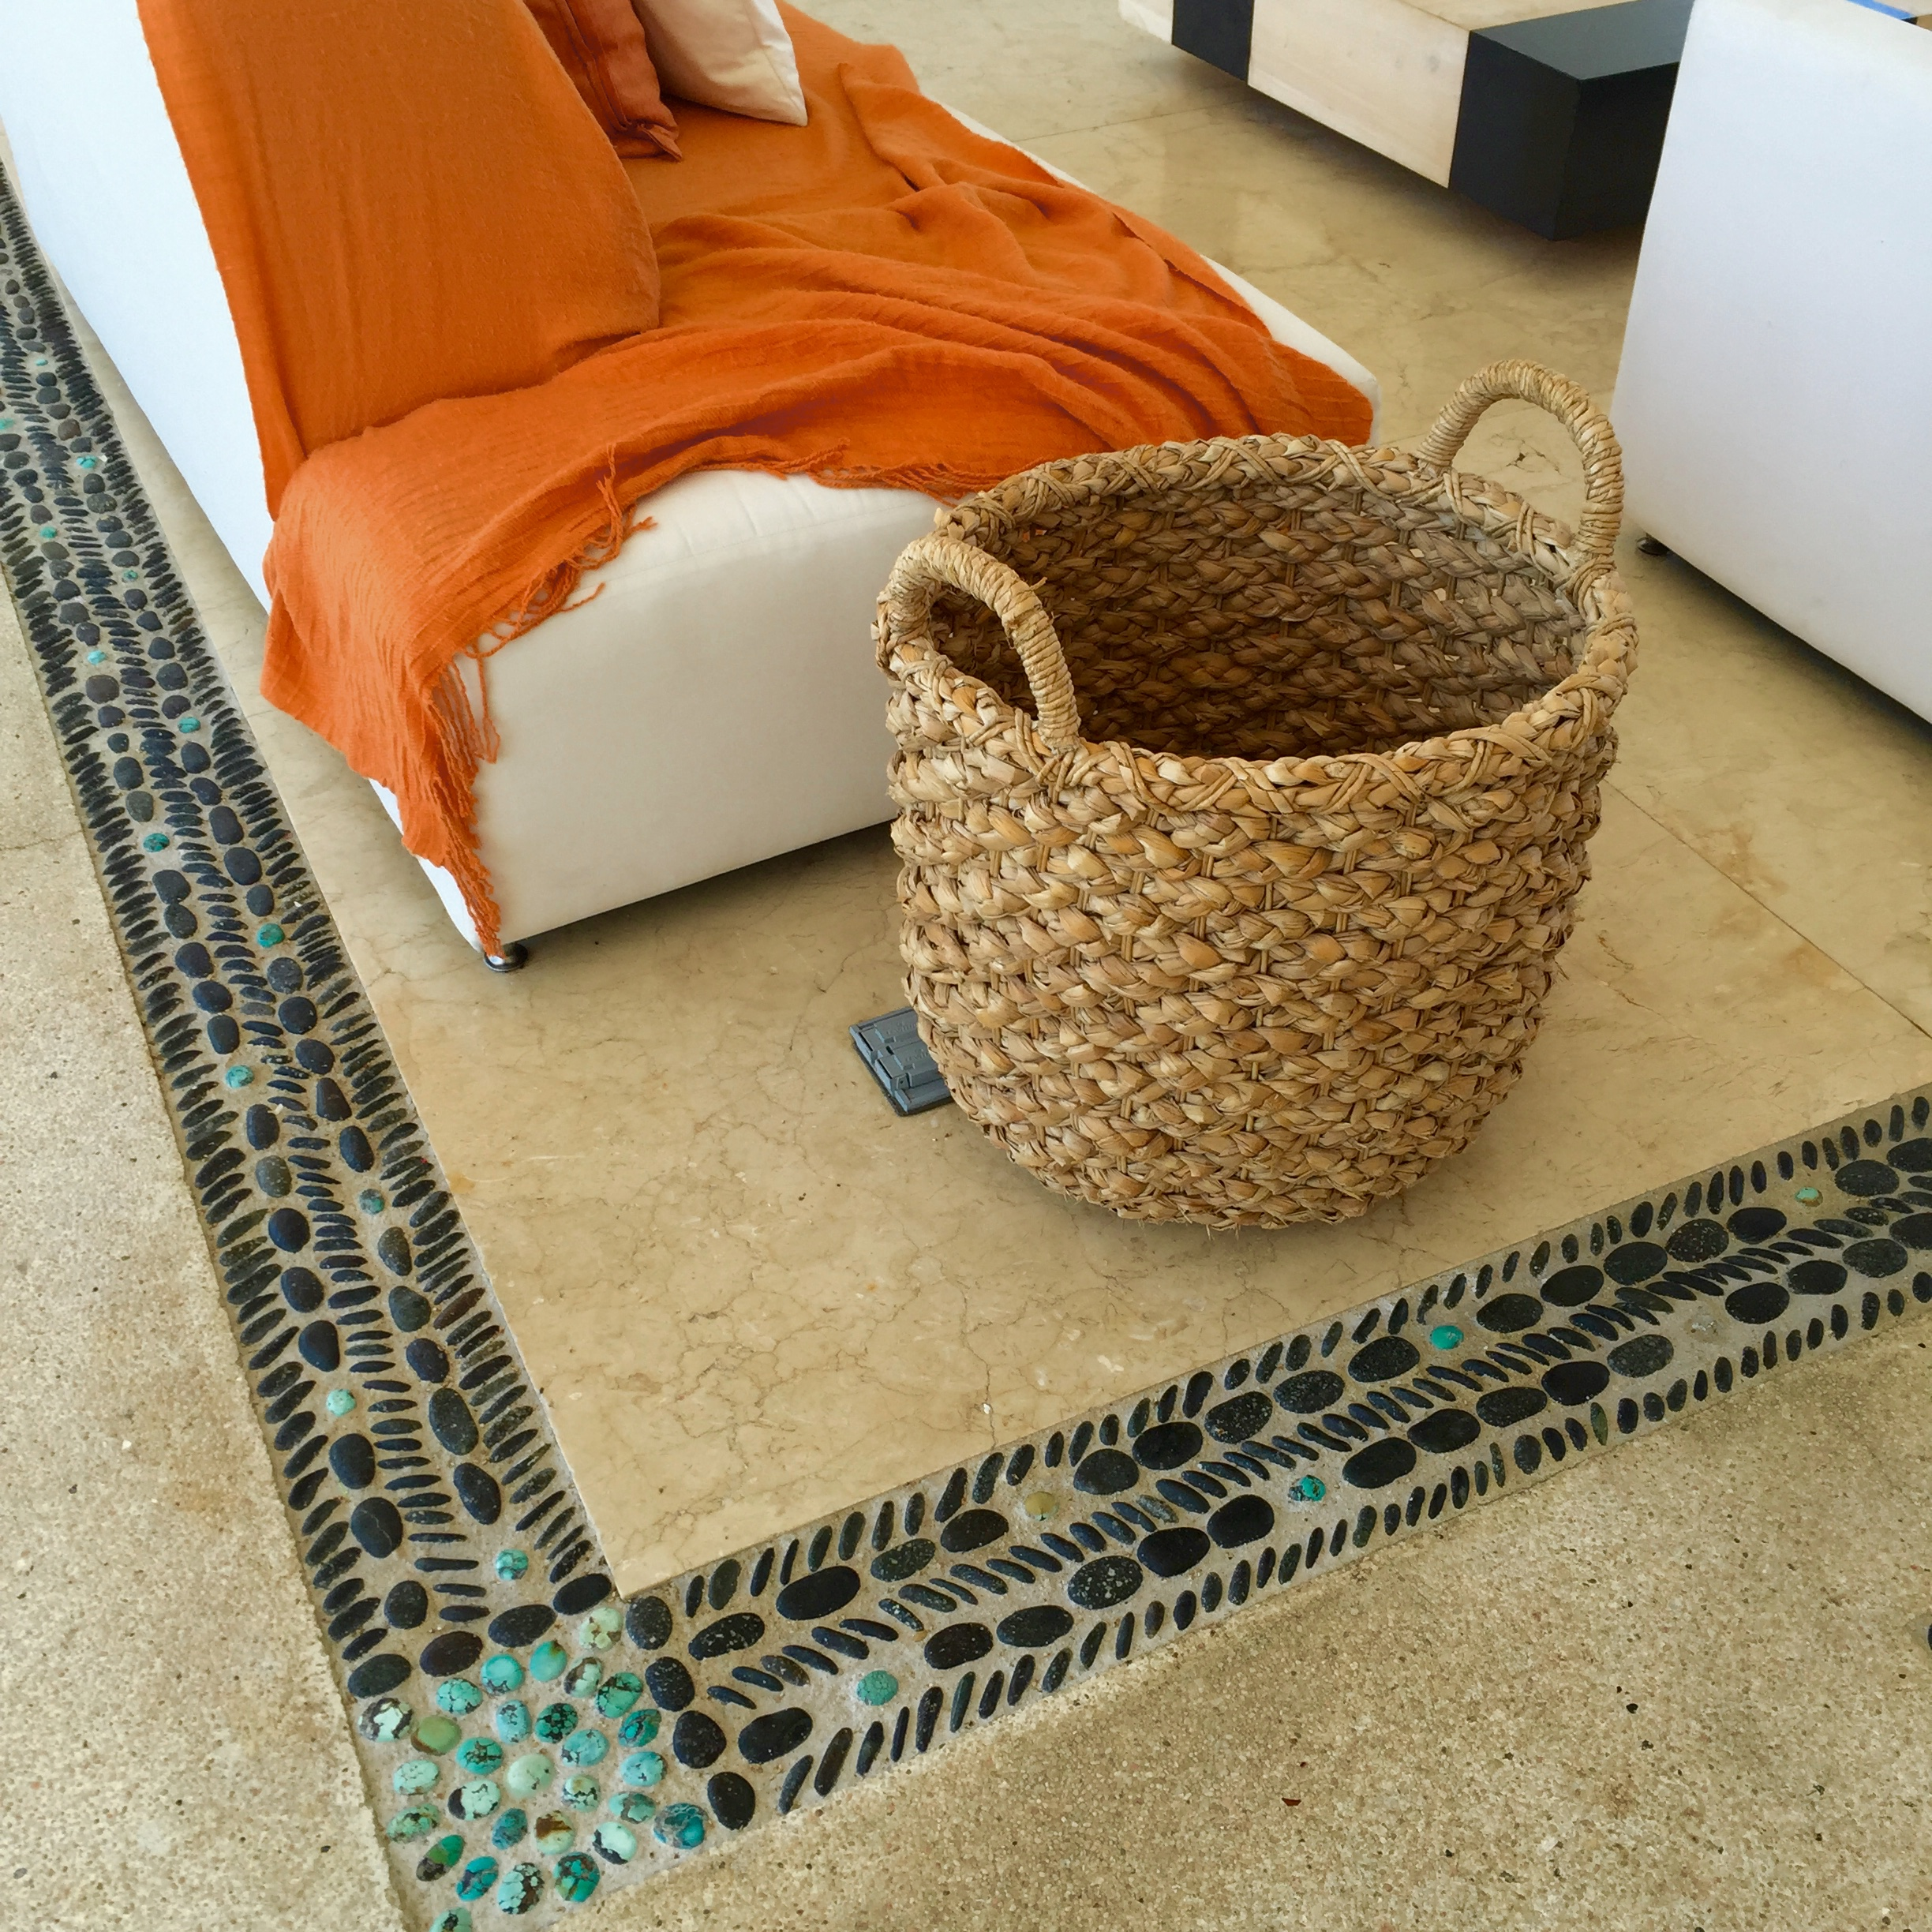 Natural woven baskets and orange and white in the main lobby.